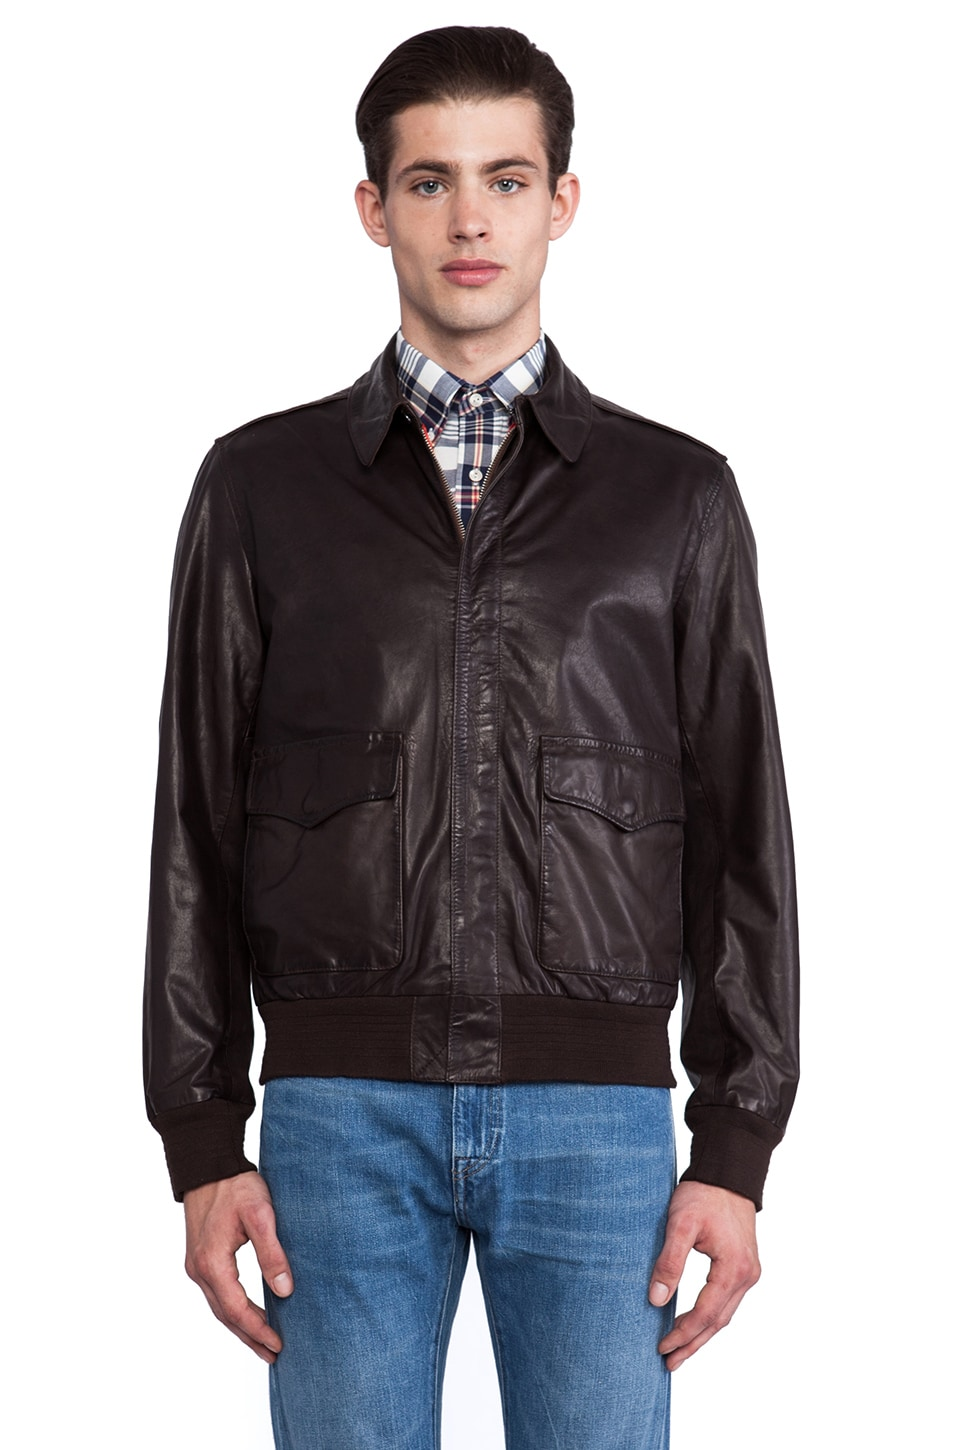 Gant The Lands Jacket in Brown